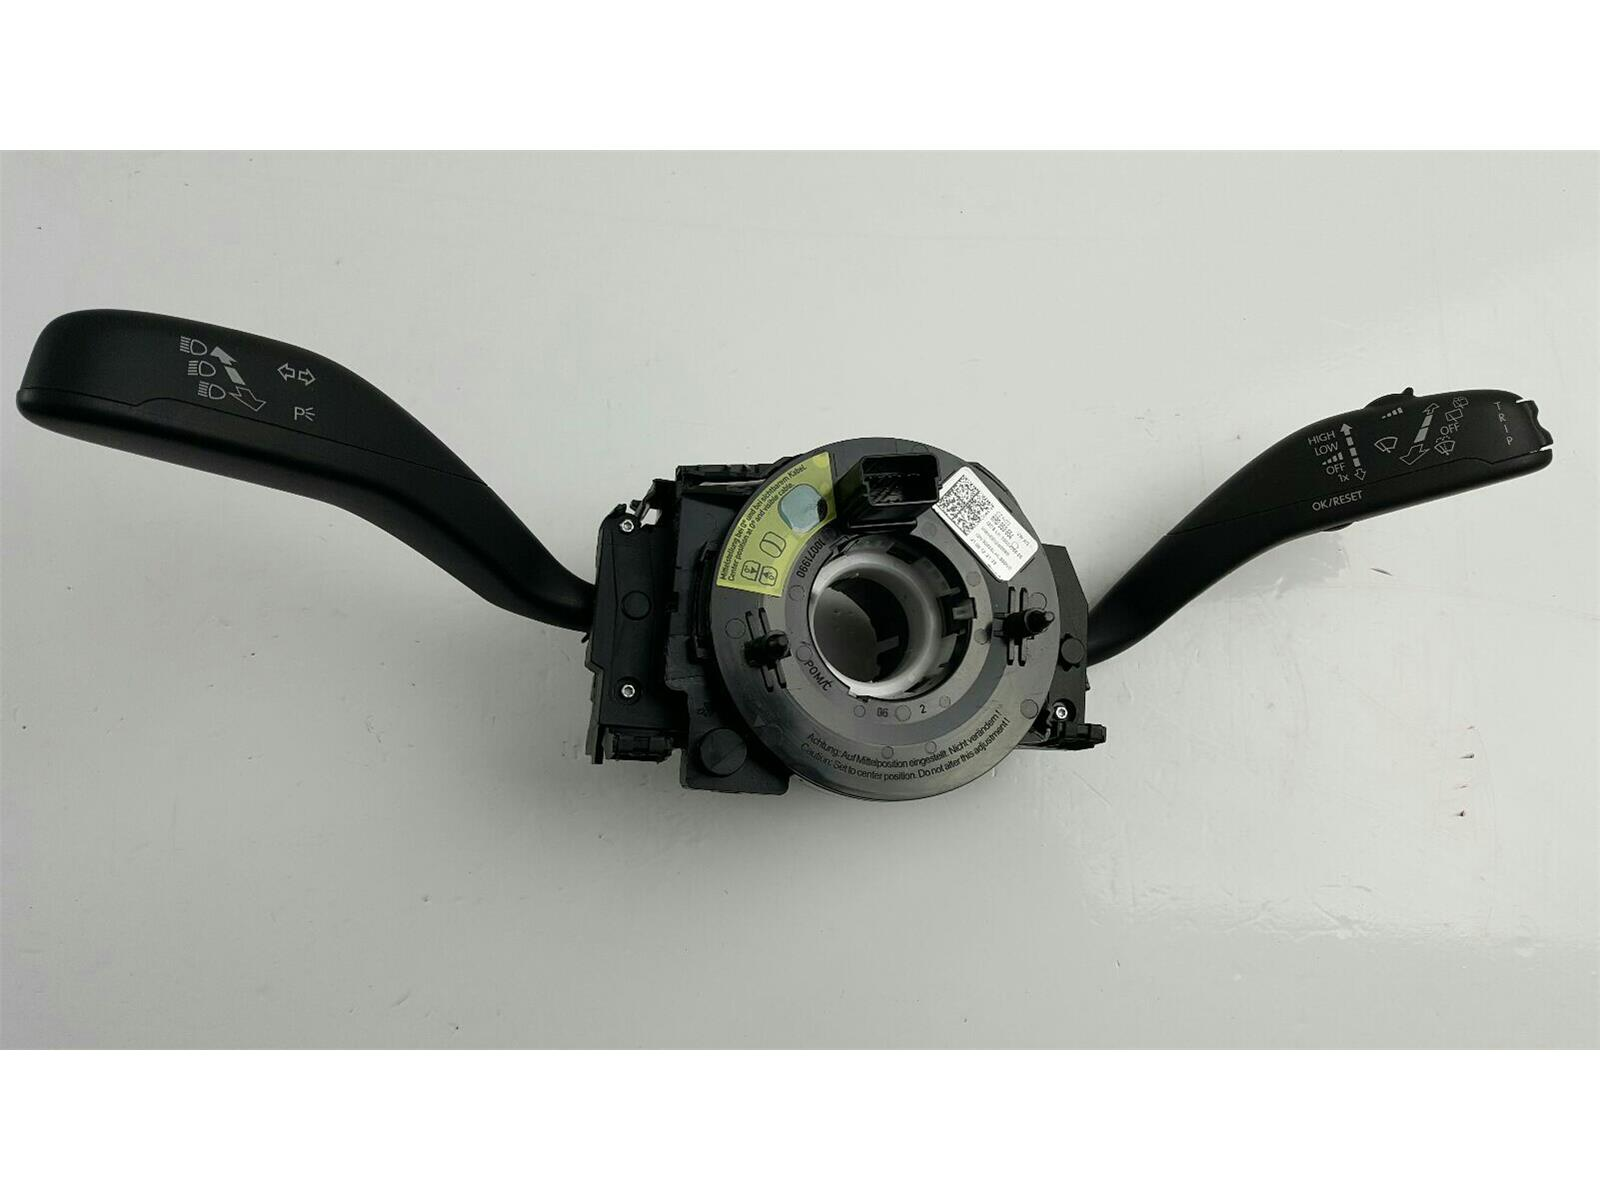 Volkswagen Polo 2010 To 2014 Switches Steering Column Petrol Manual For Sale From Scb